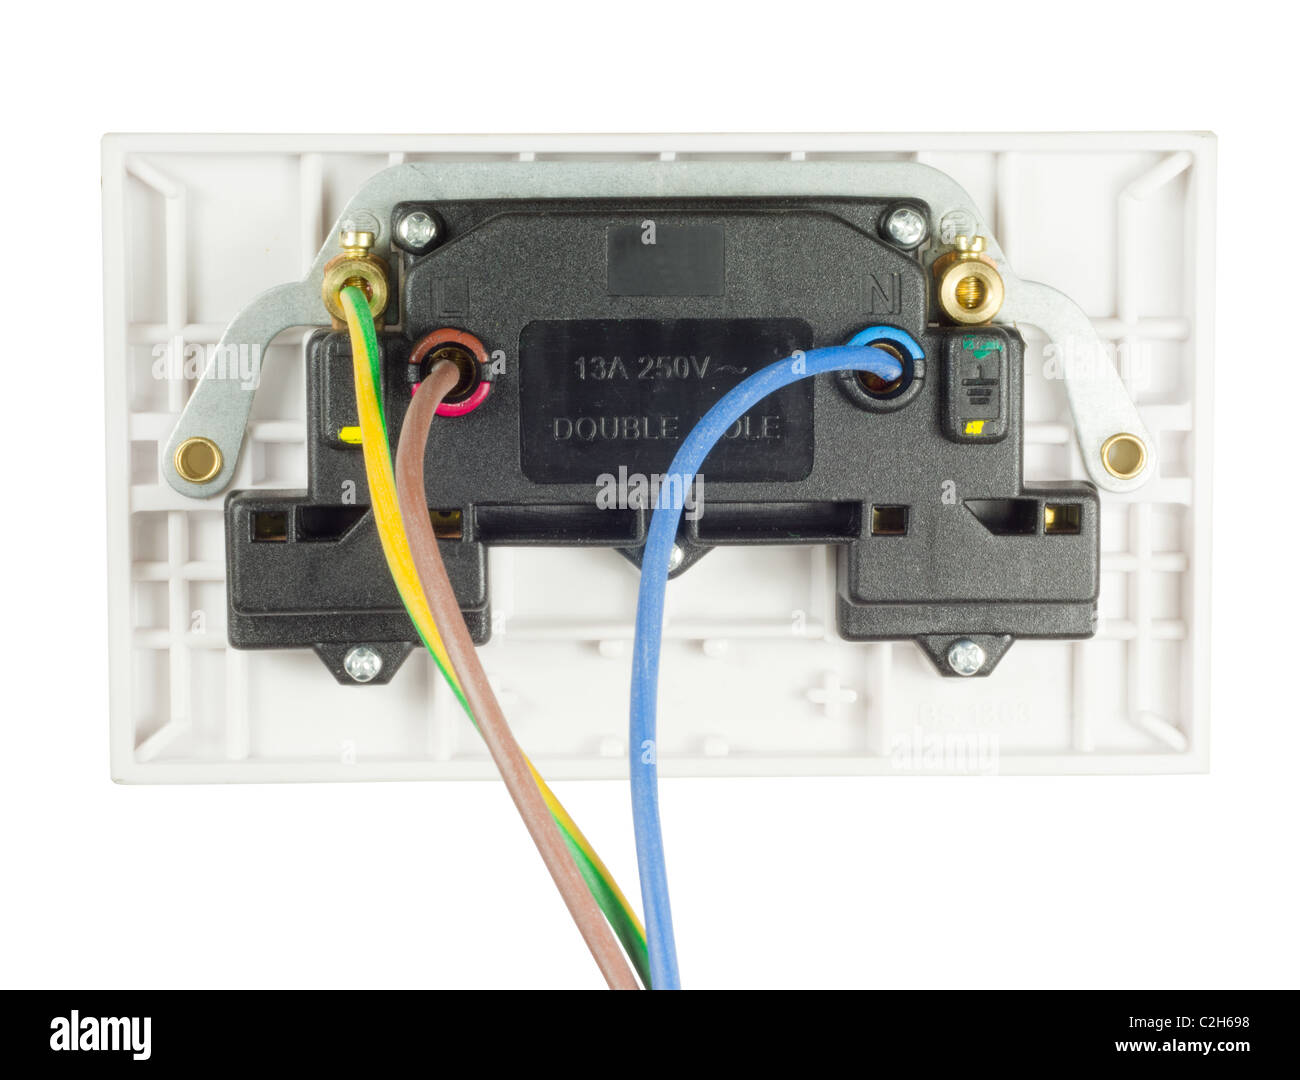 hight resolution of wiring a two plug outlet wiring diagram todaywiring a double plug socket blog wiring diagram wiring